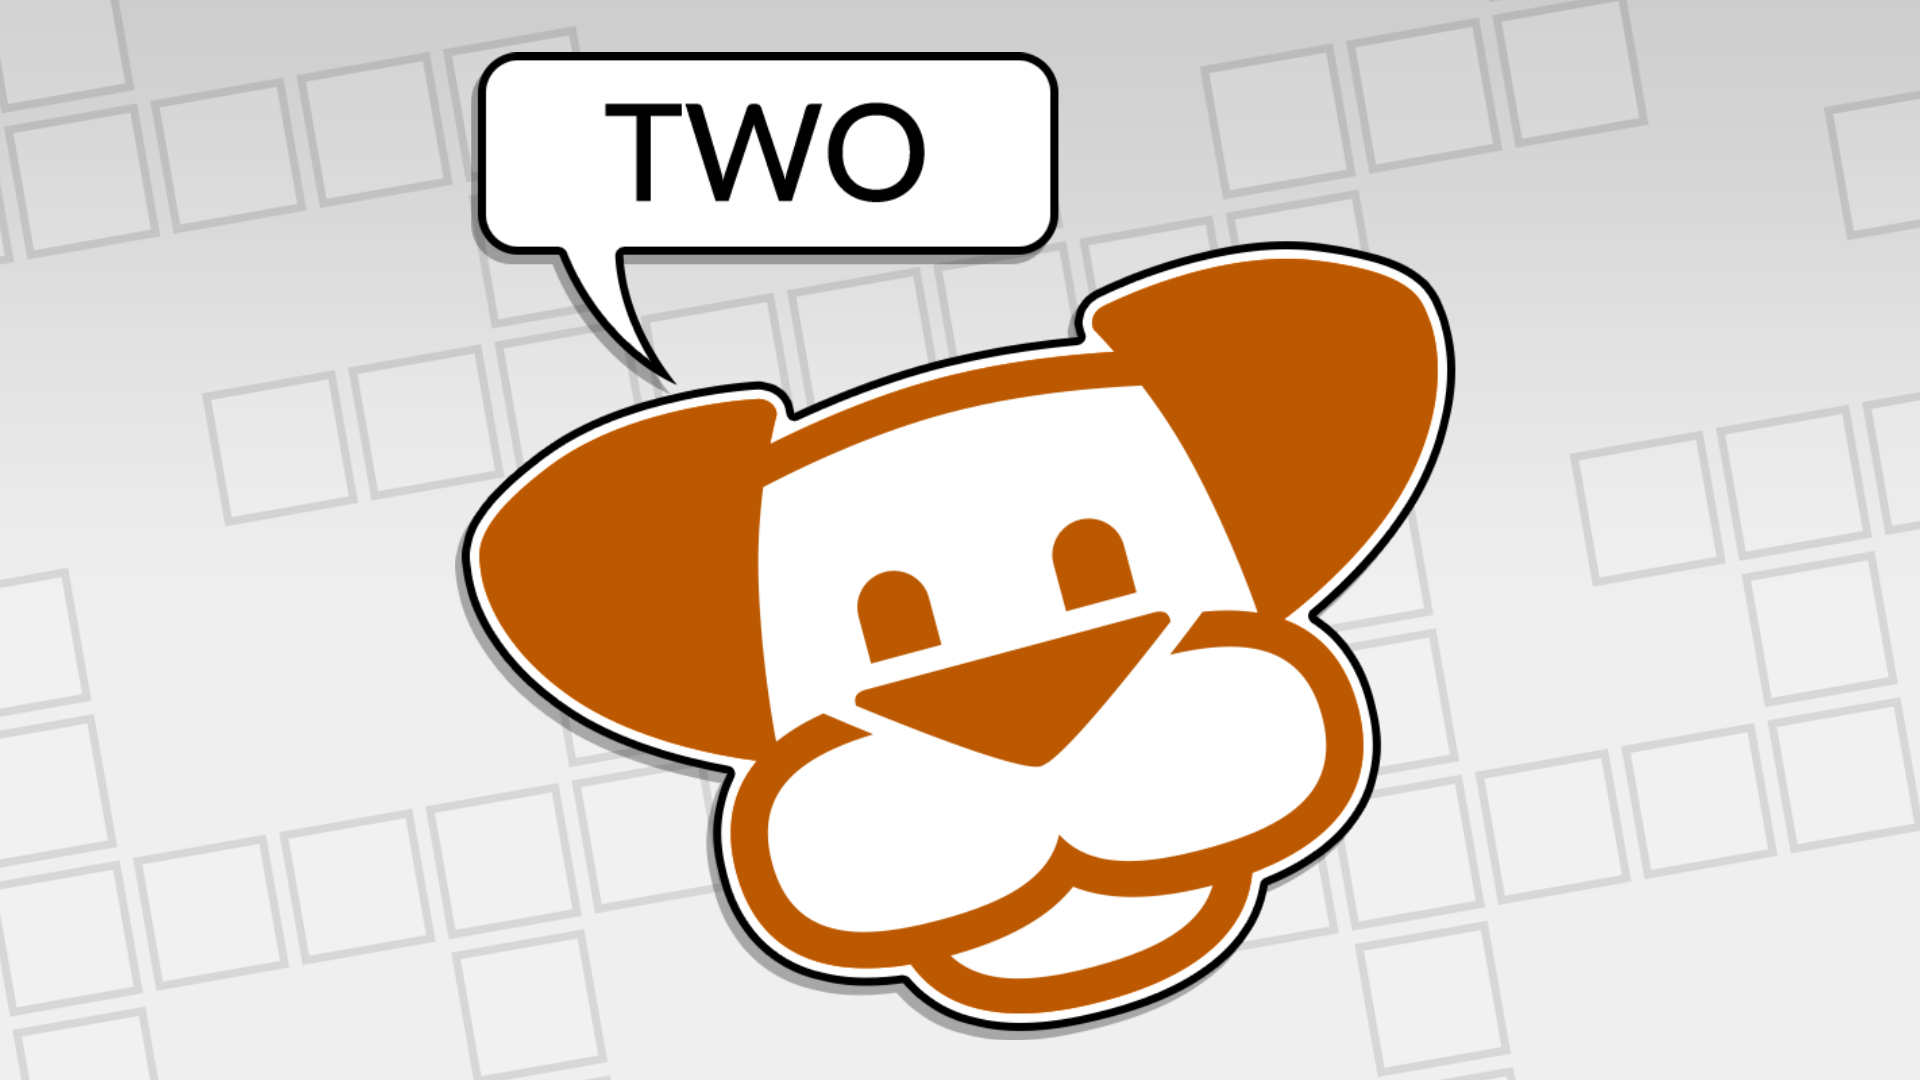 Icon for Two easy